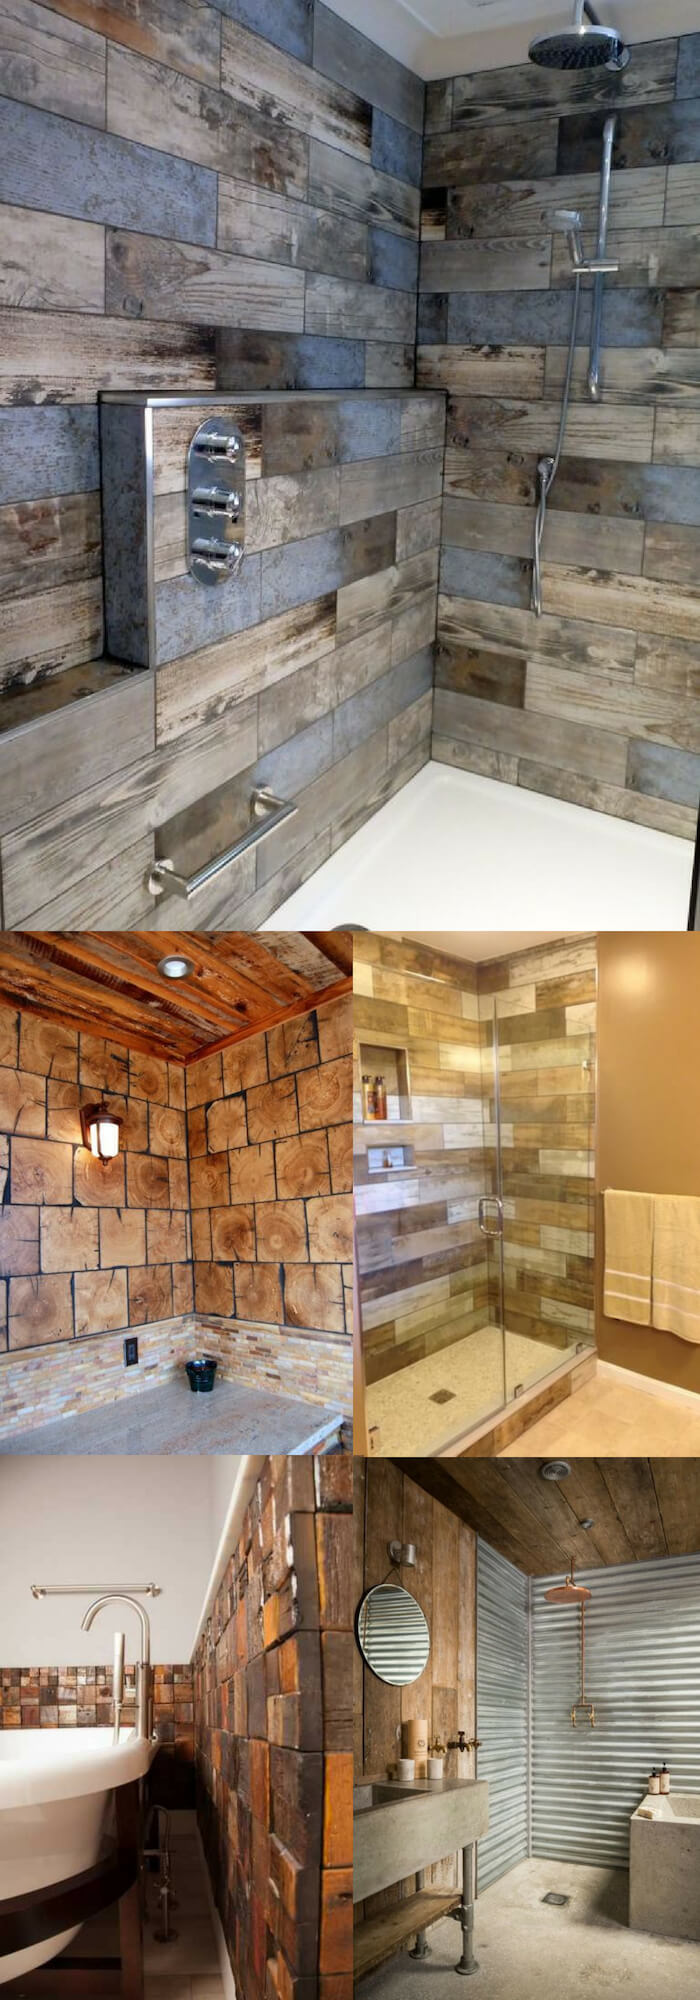 Wood wall   Unique Wall Tile Ideas for Bathroom Design